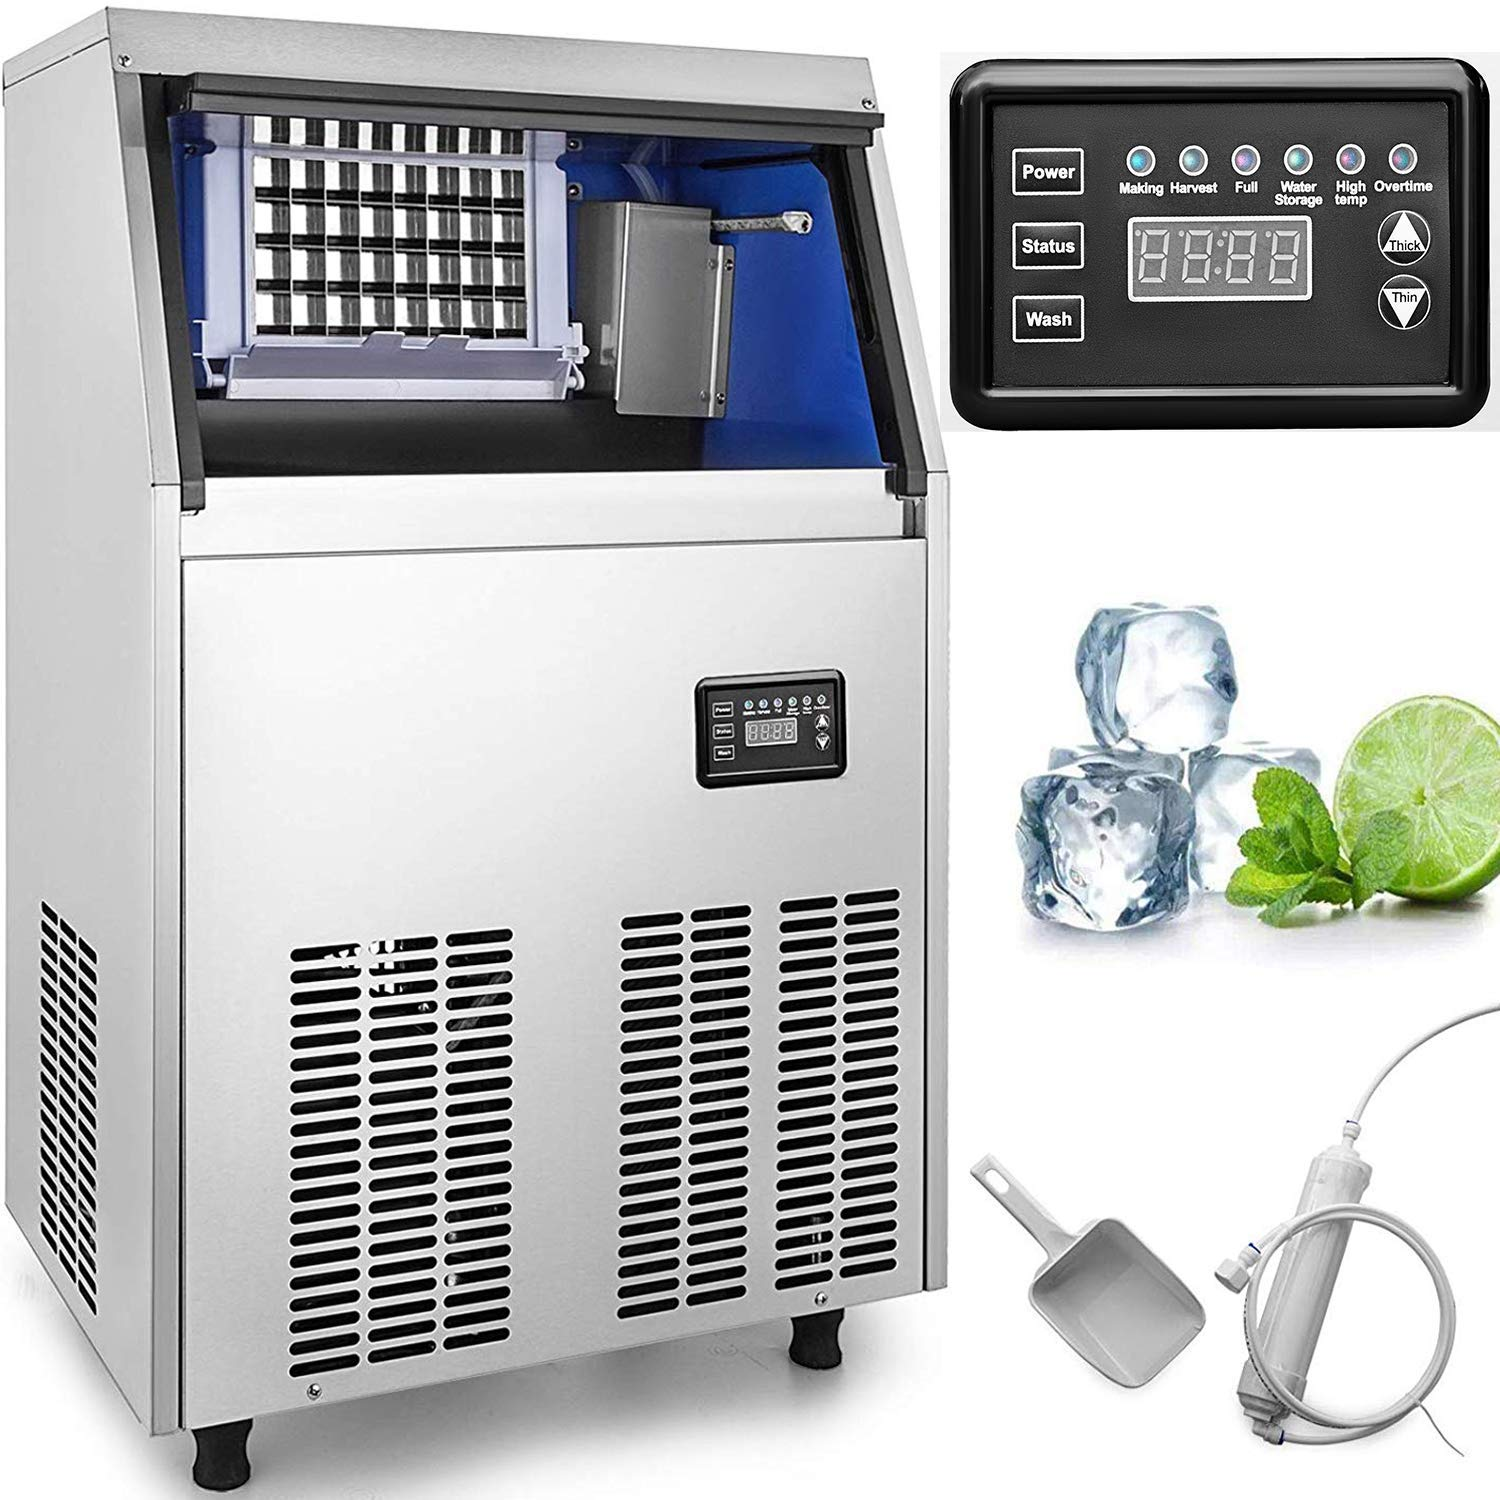 VEVOR Commercial Maker Machine 100LBs/24H with 44lbs Storage Capacity 36 Ice Cubes Per Plate Stainless Steel Portable Automatic Auto Clean for Home Supermarkets